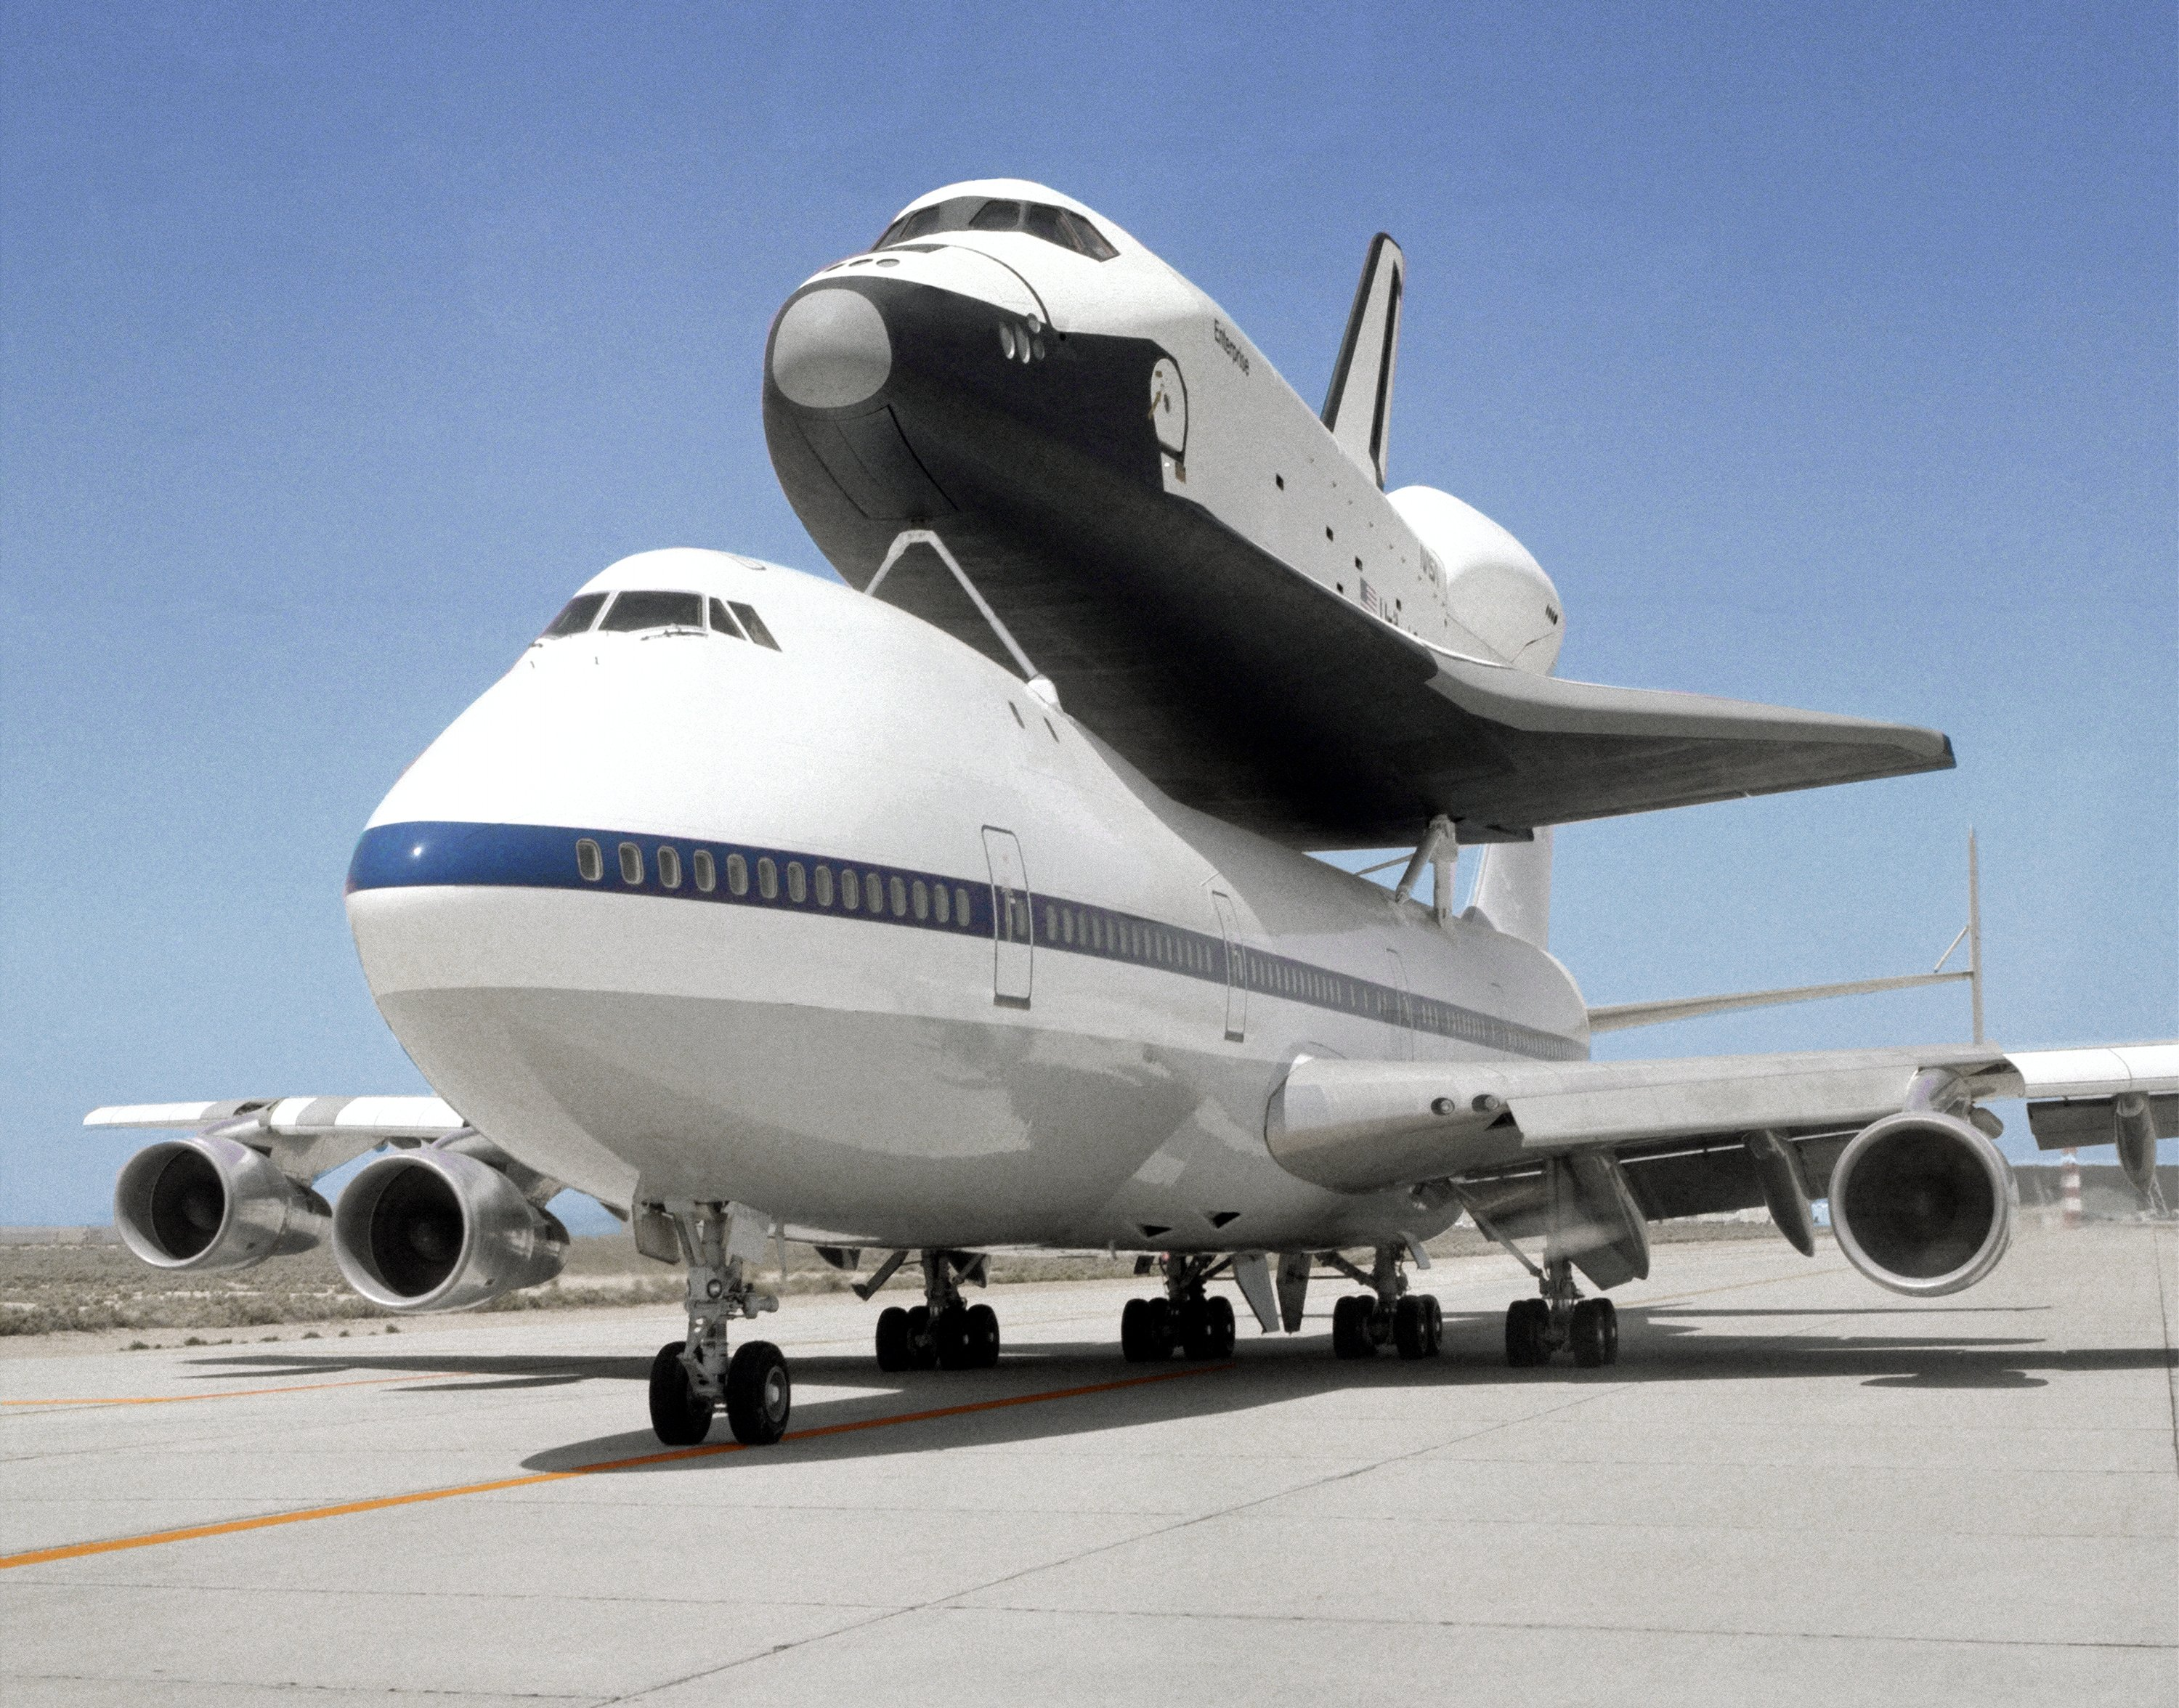 boeing 747 airliner aircraft plane airplane boeing-747 nasa space